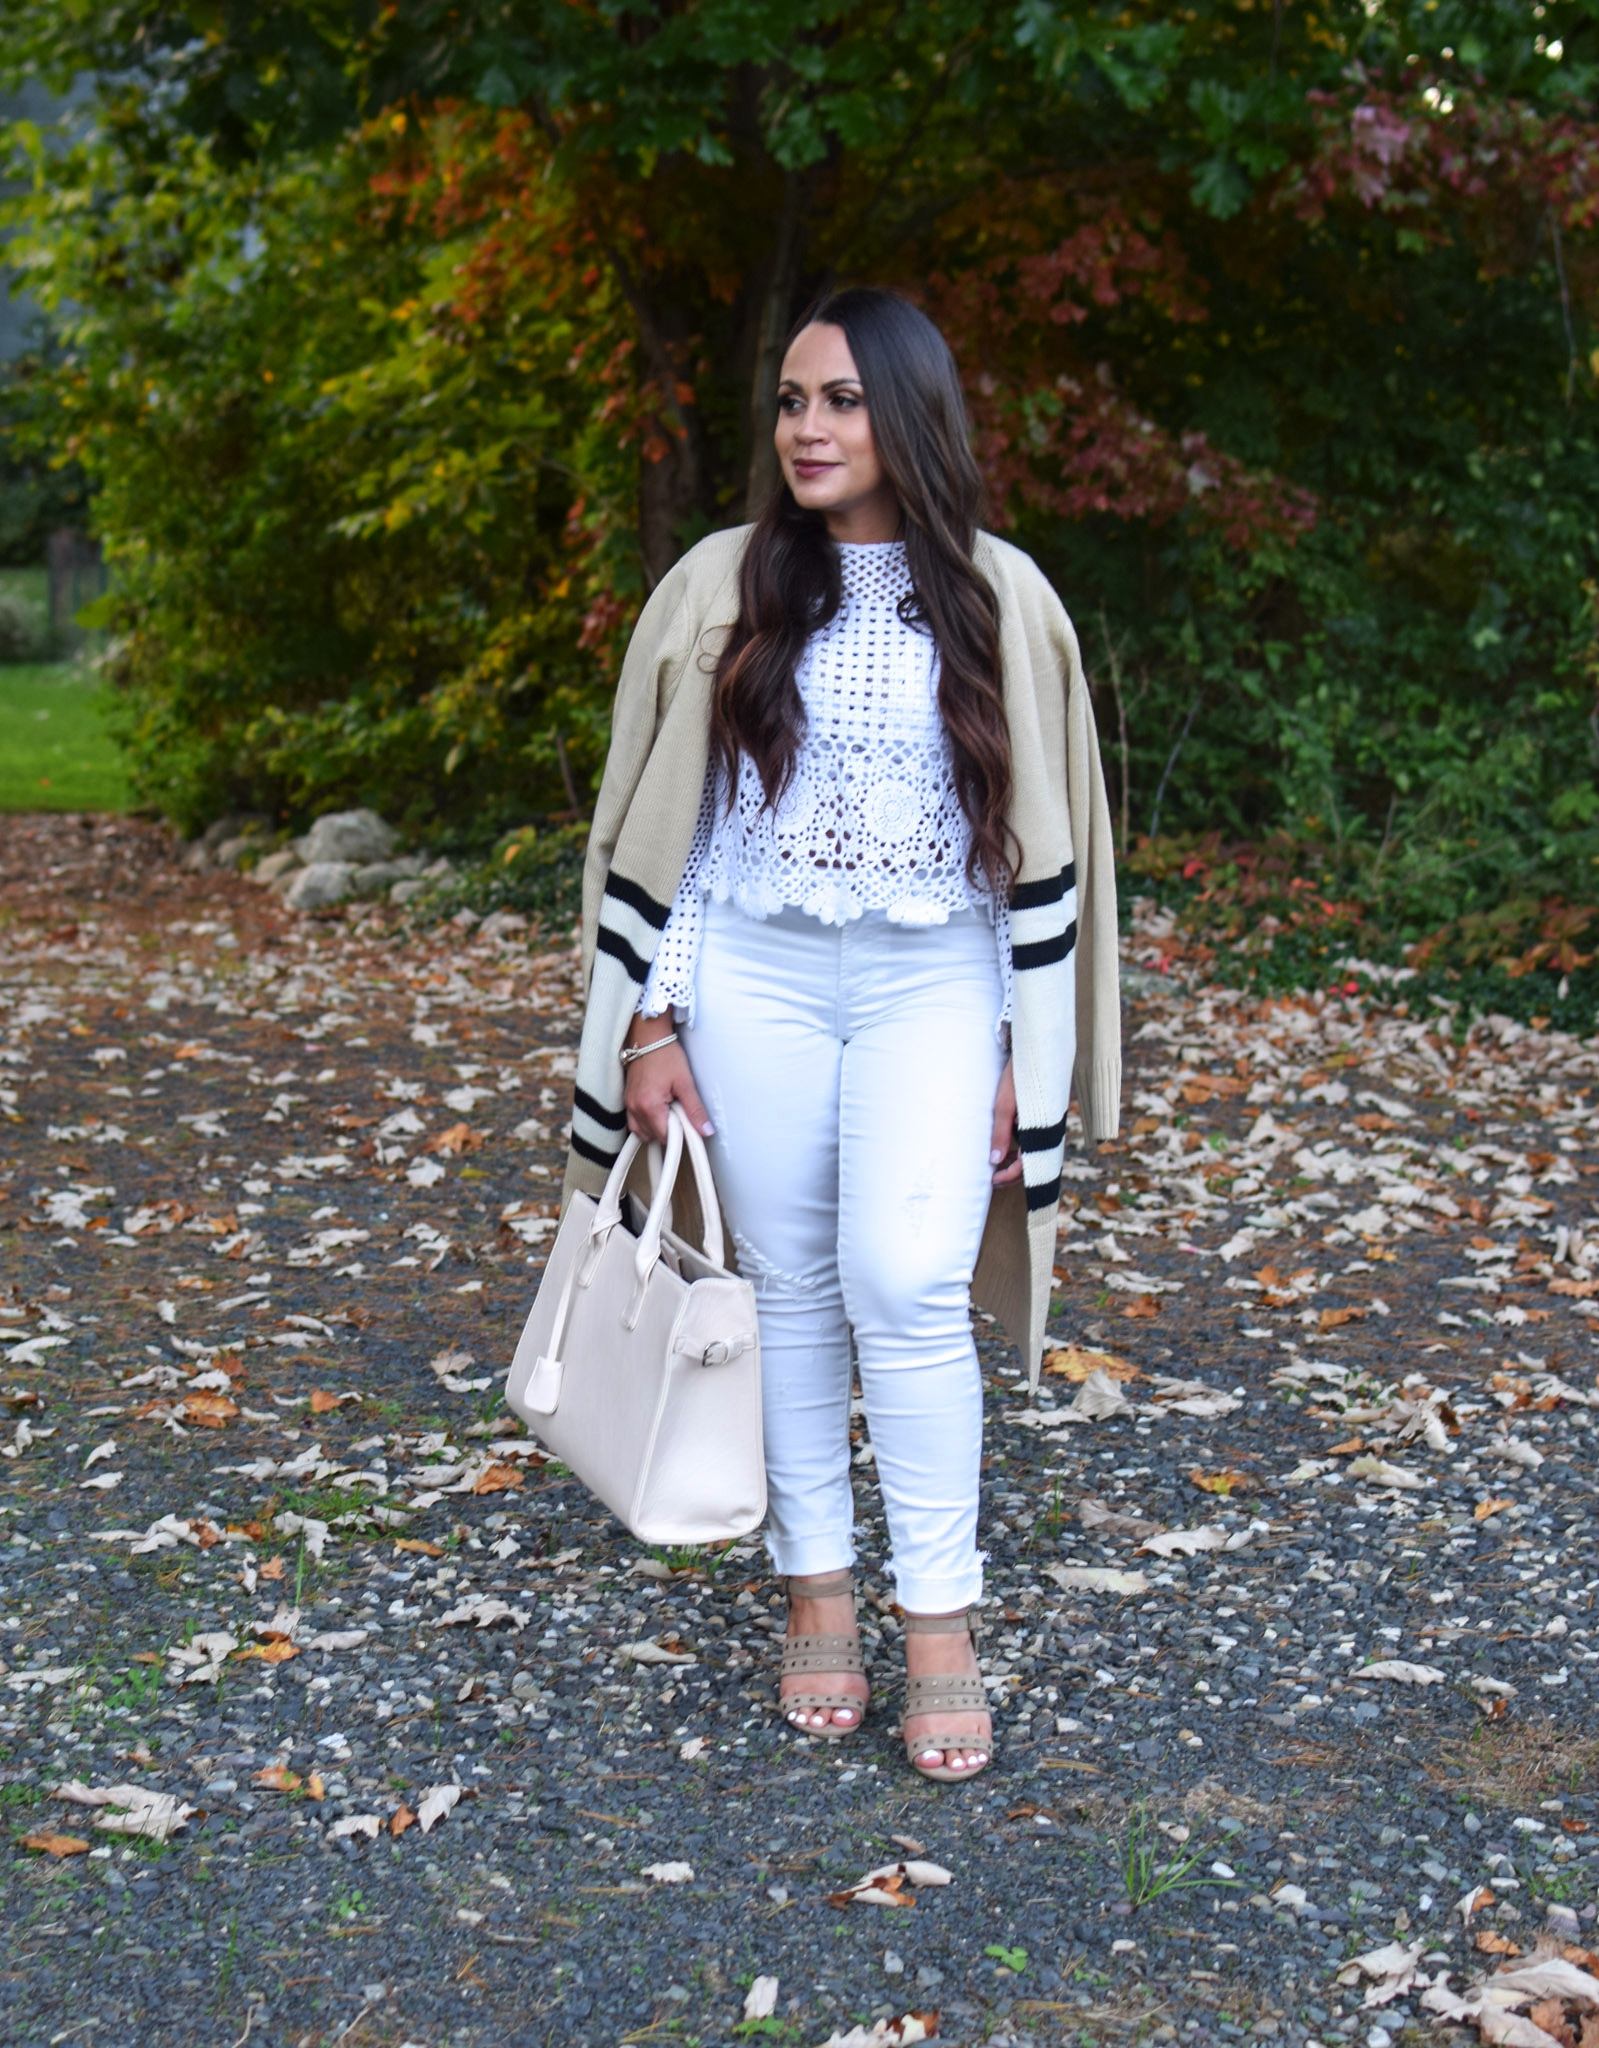 f27462addd439a How to Wear White in Fall + WW Linkup - mom with style